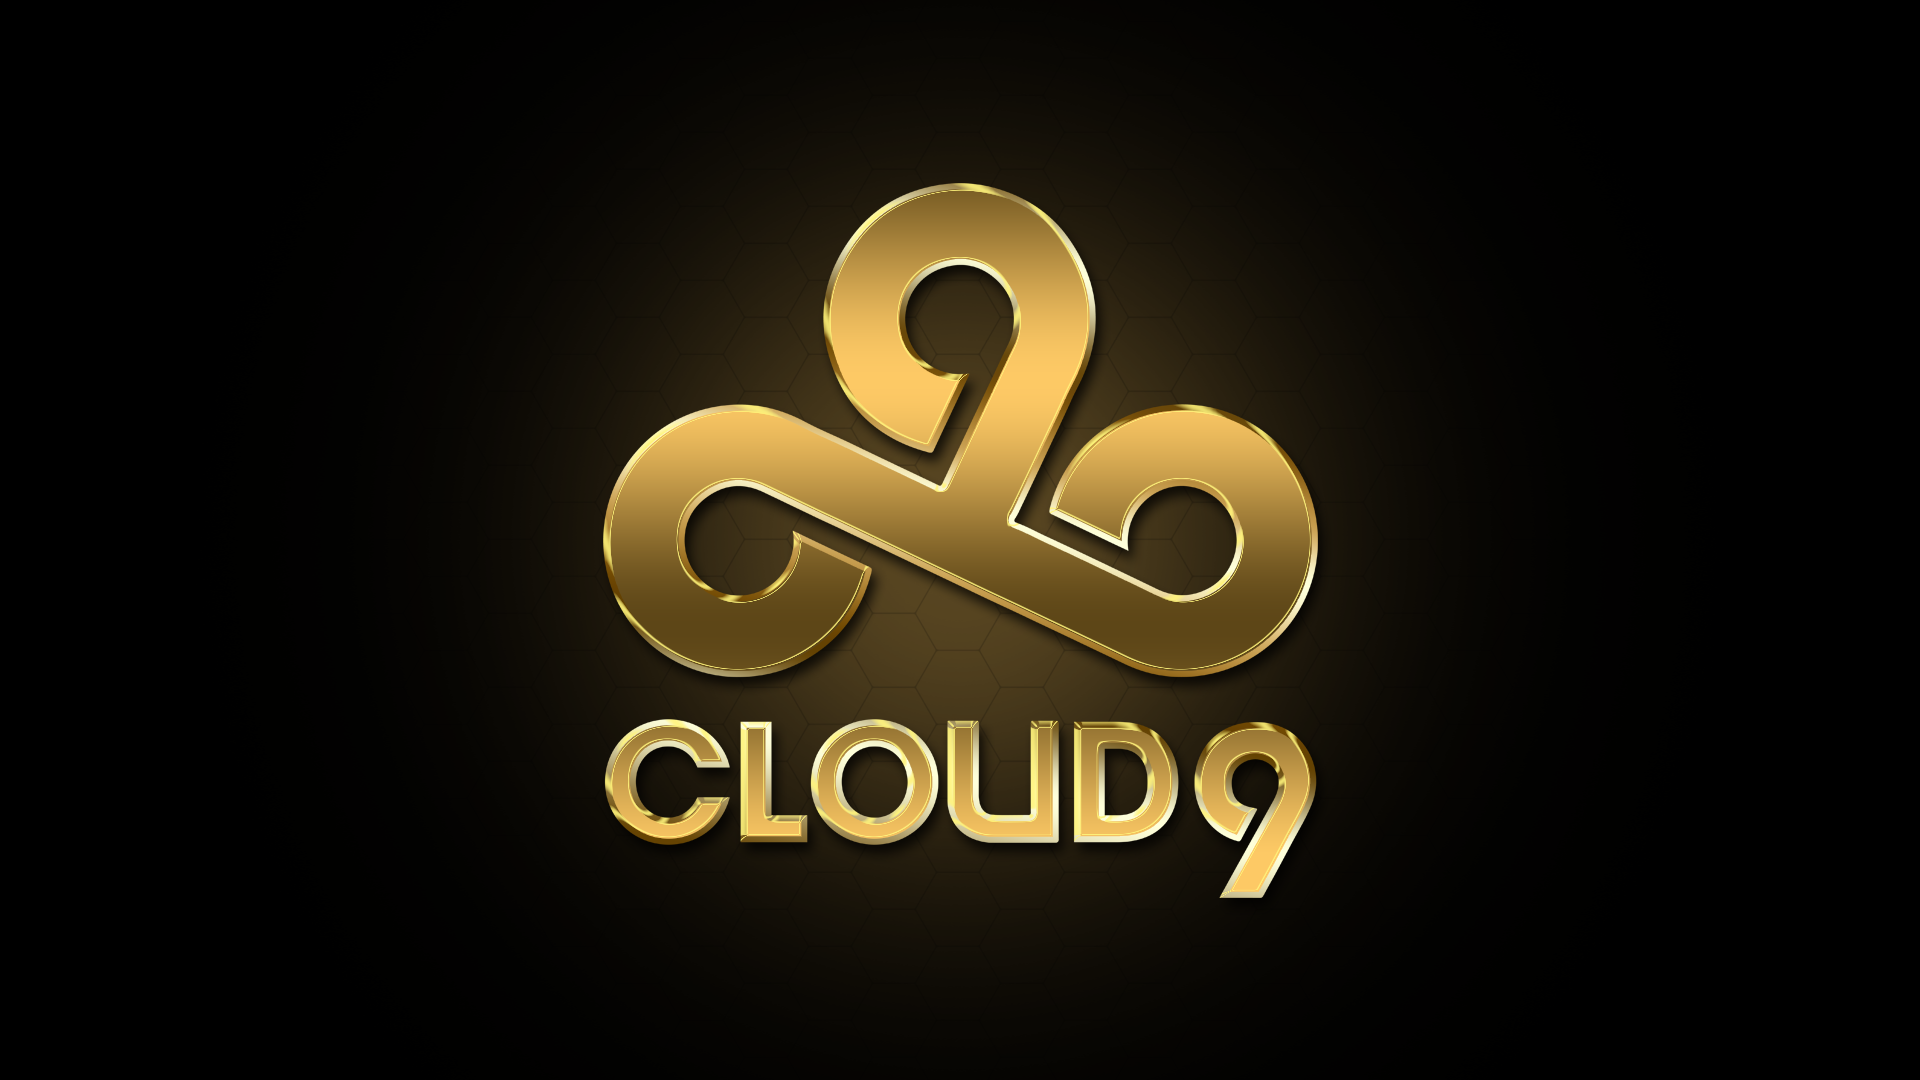 Cloud9 Gold